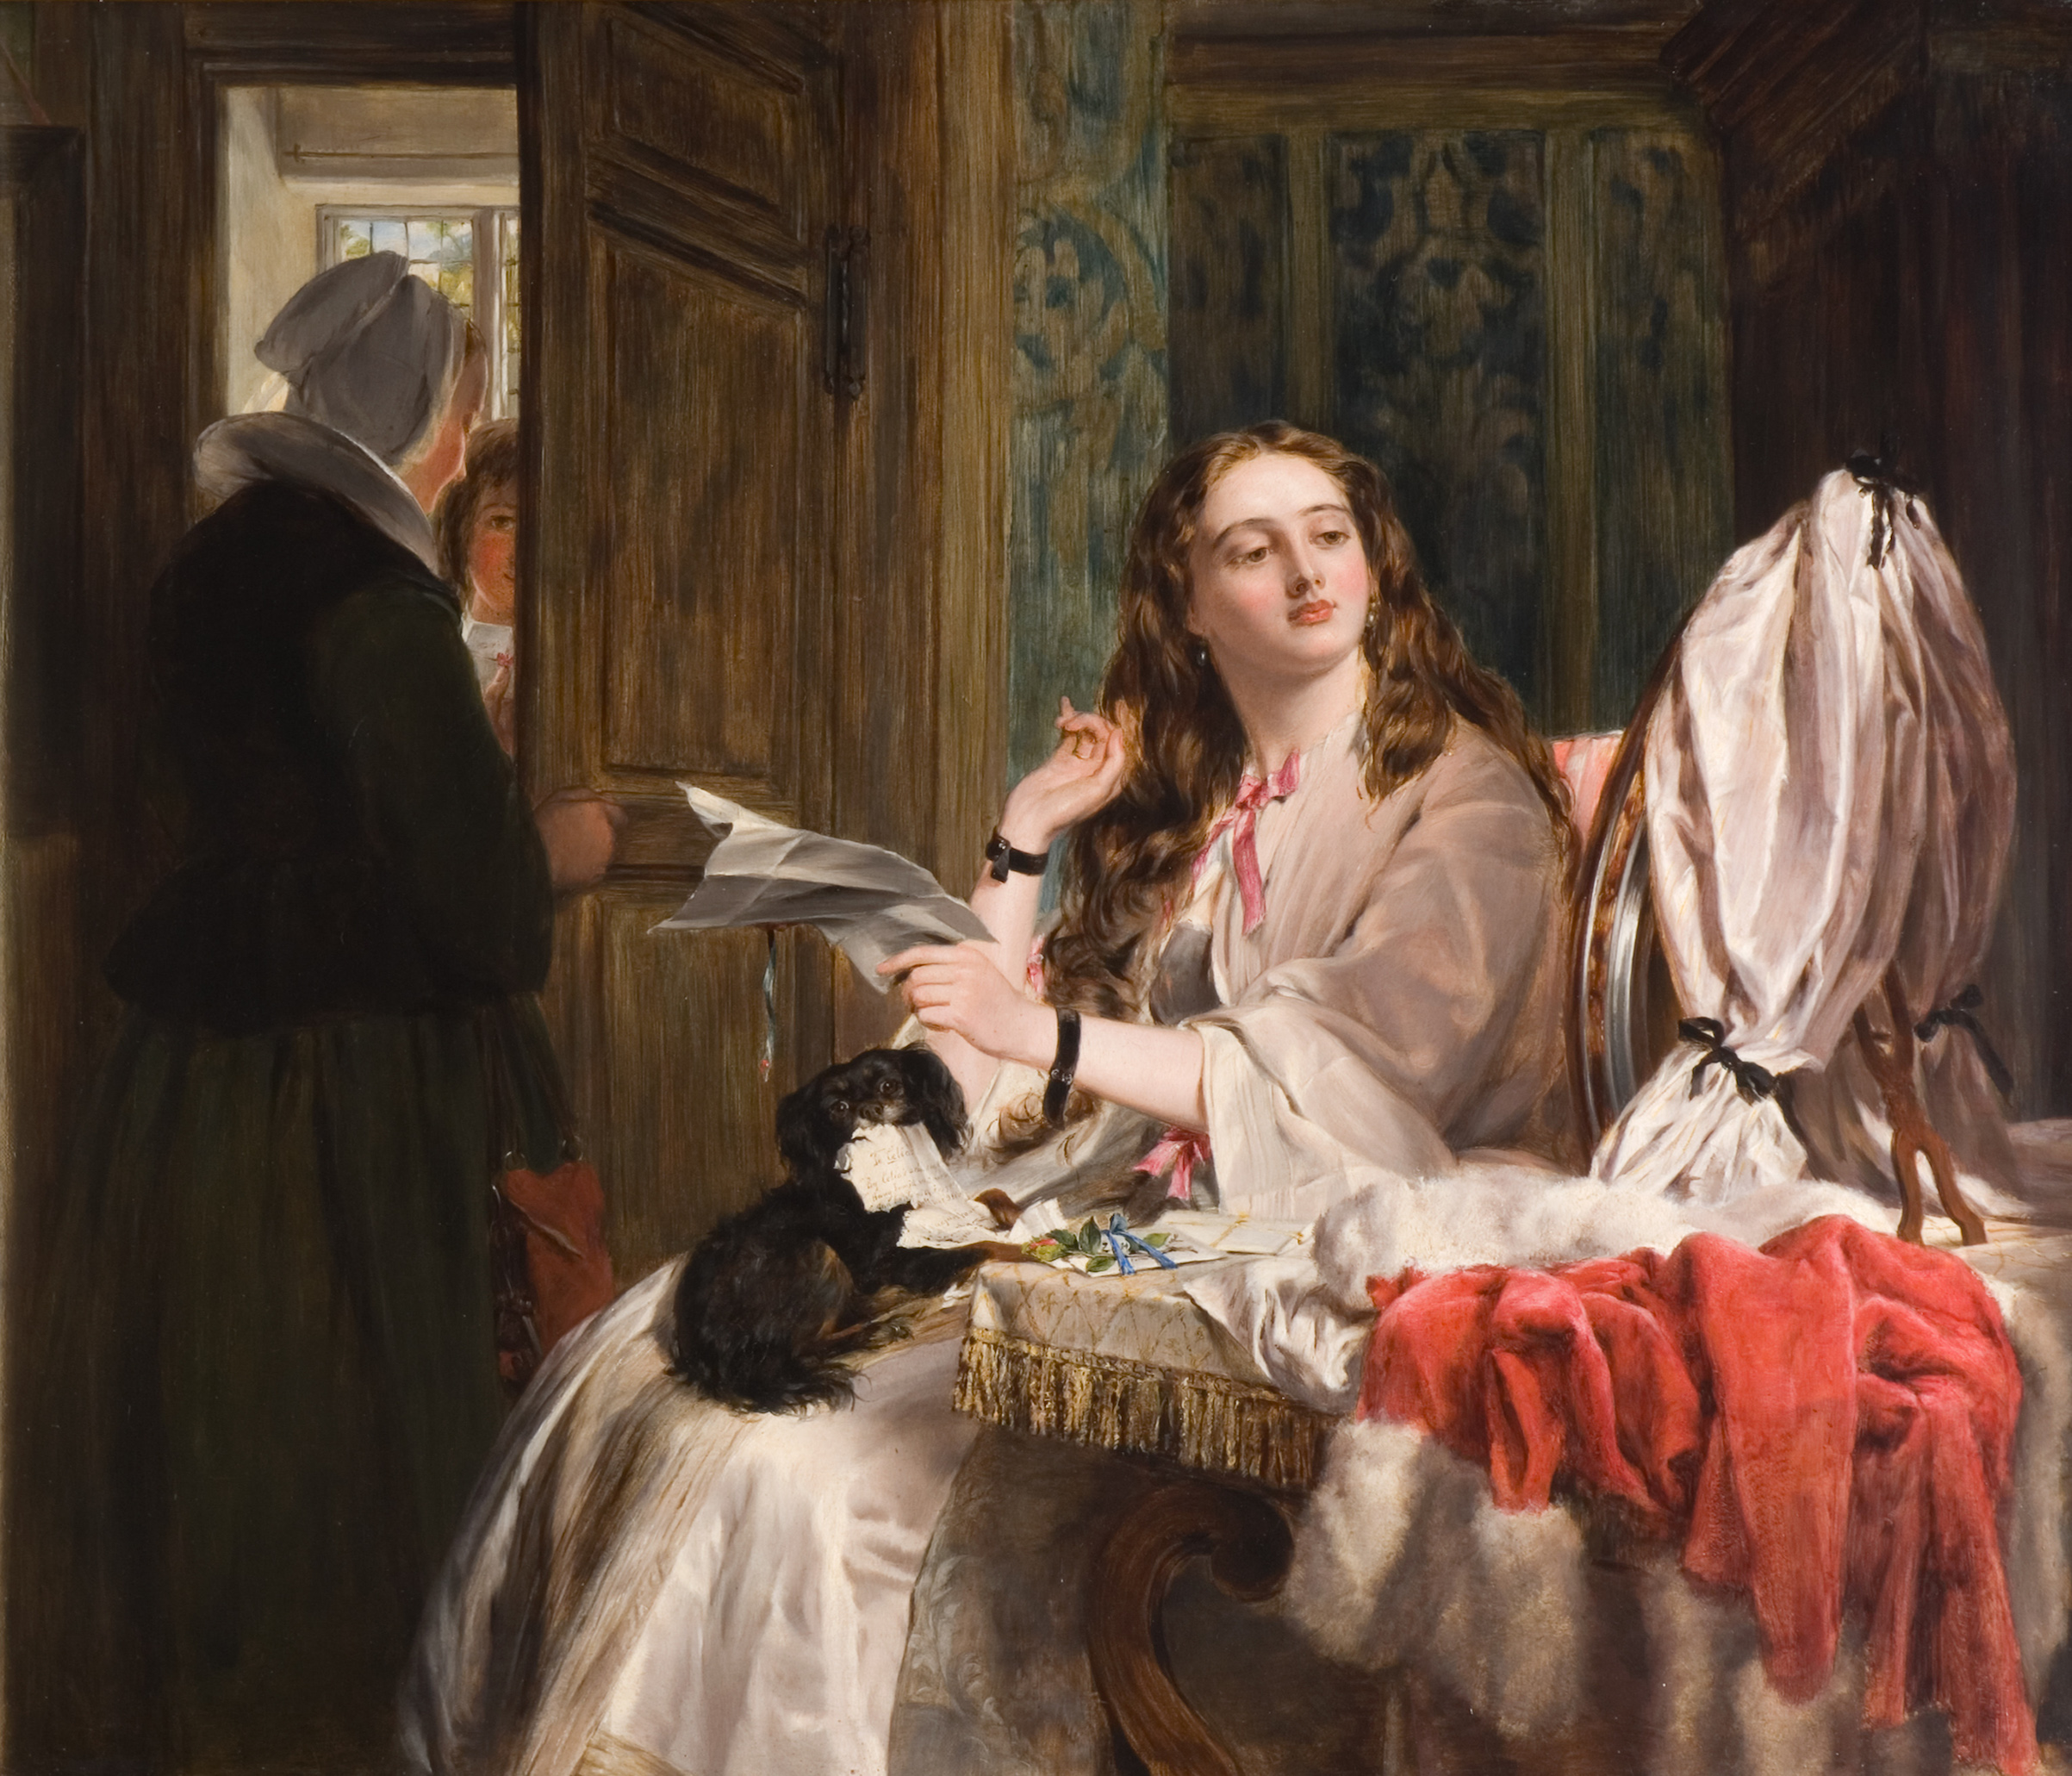 St. Valentine's Morning, 1863. Oil Painting by John Calcott Horsley (1817-1903). Oil painting showing a young woman in her room reading a letter with a black dog on her lap. At the door, which is being opened a lady in black, a male suitor waits to enter.